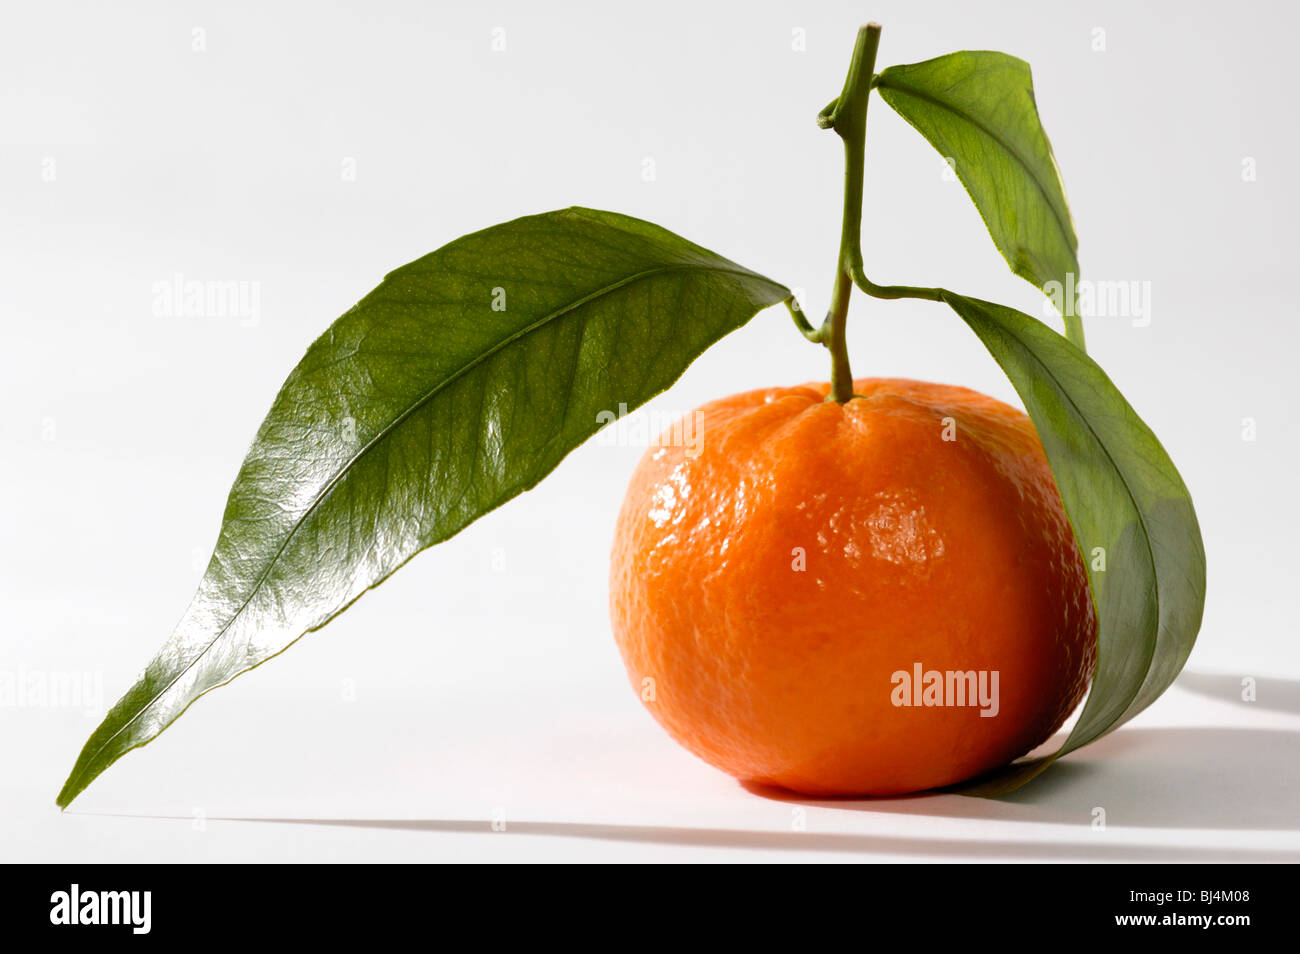 Juicy appetizing mandarin with green leaves Isolated silhouette on white background Food still life photography - Stock Image